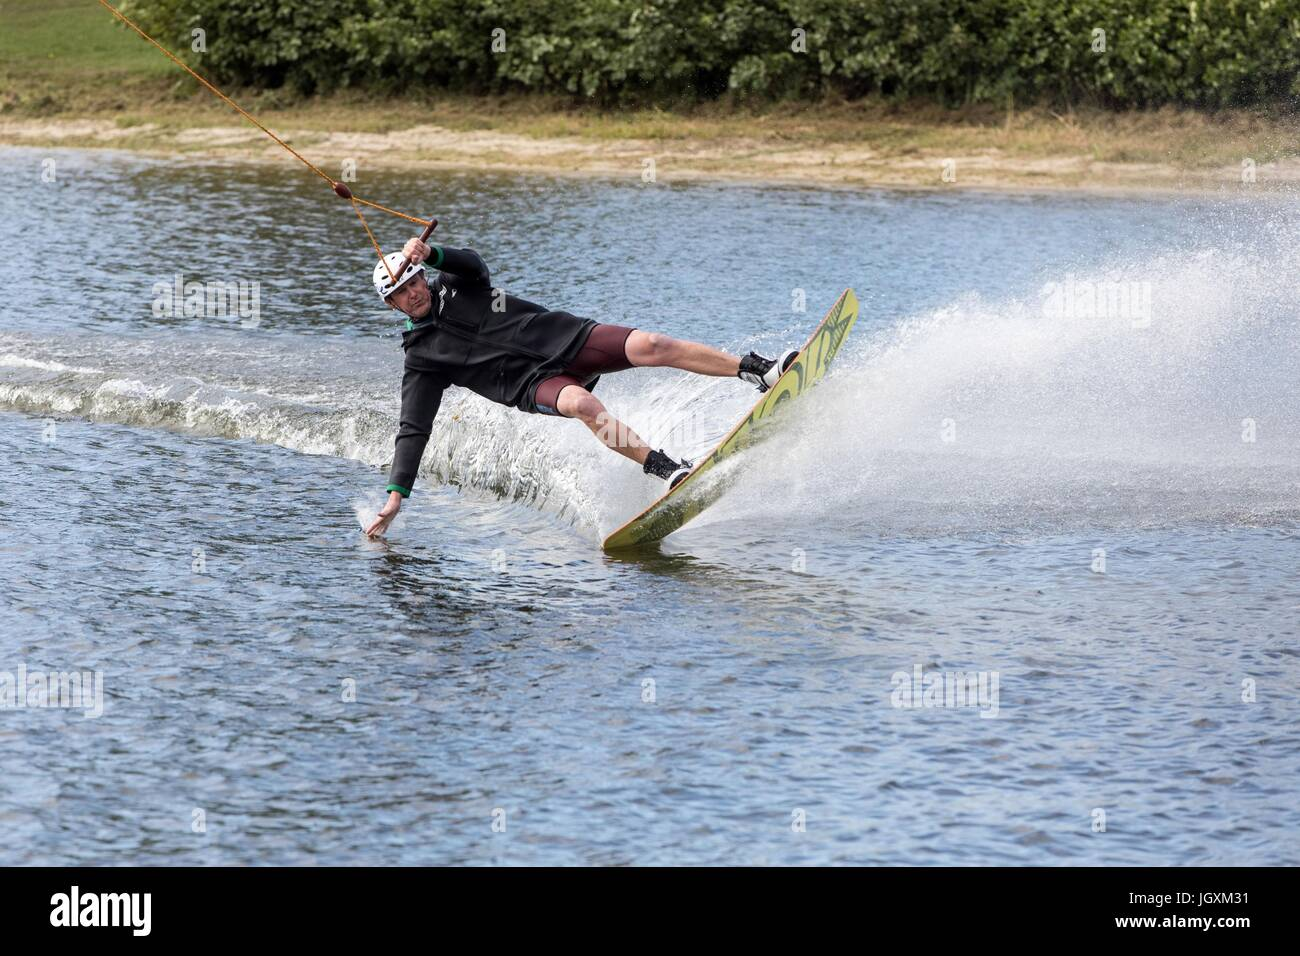 WAKEBOARD,FONTAINE-SIMON,FRANCE - Stock Image